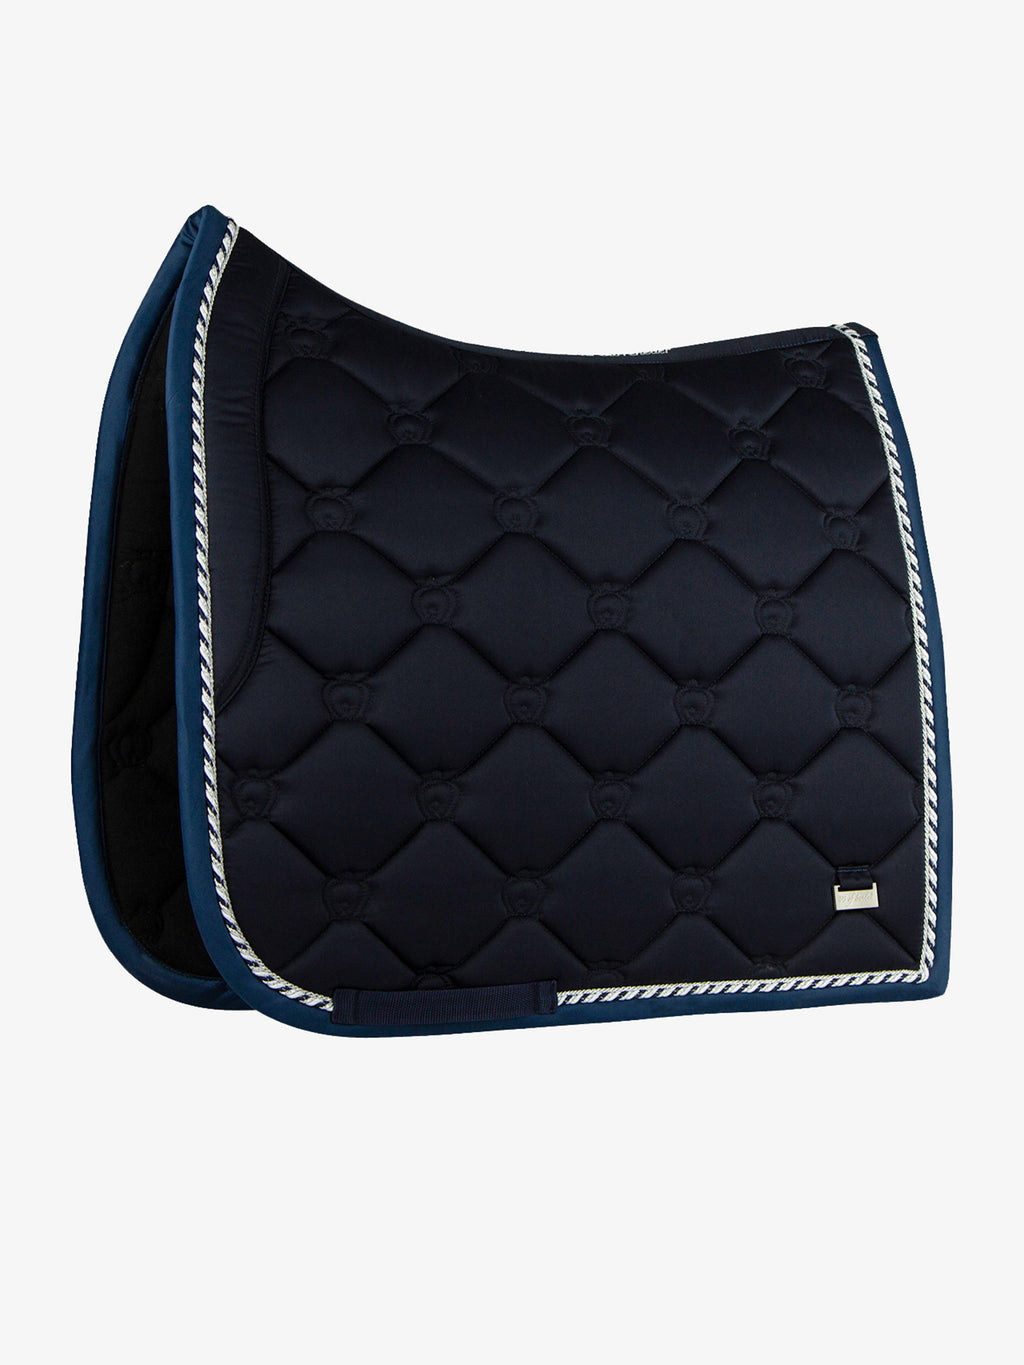 Ps of Sweden Dressage Saddle Pad Marine - The Dressage Store